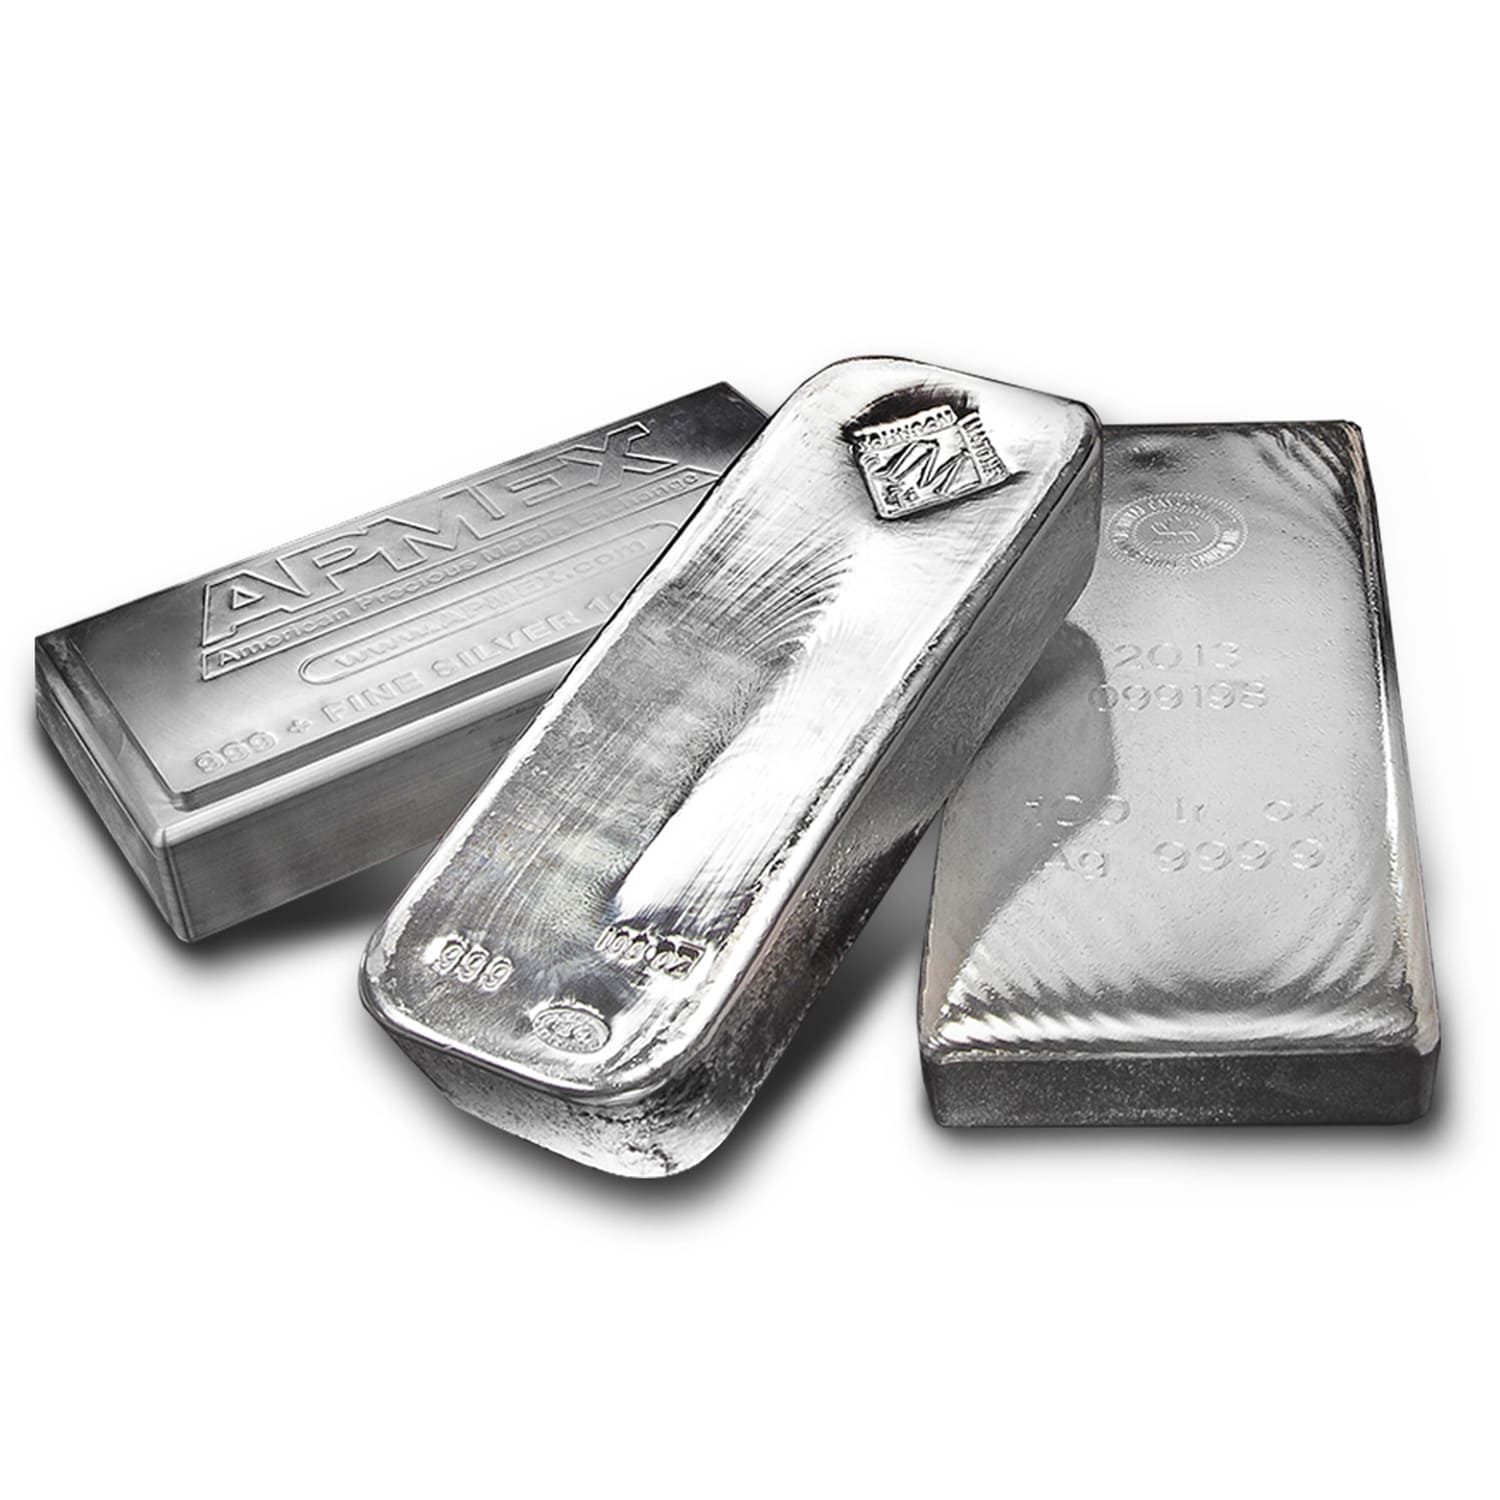 96.50 oz Silver Bar - Secondary Market